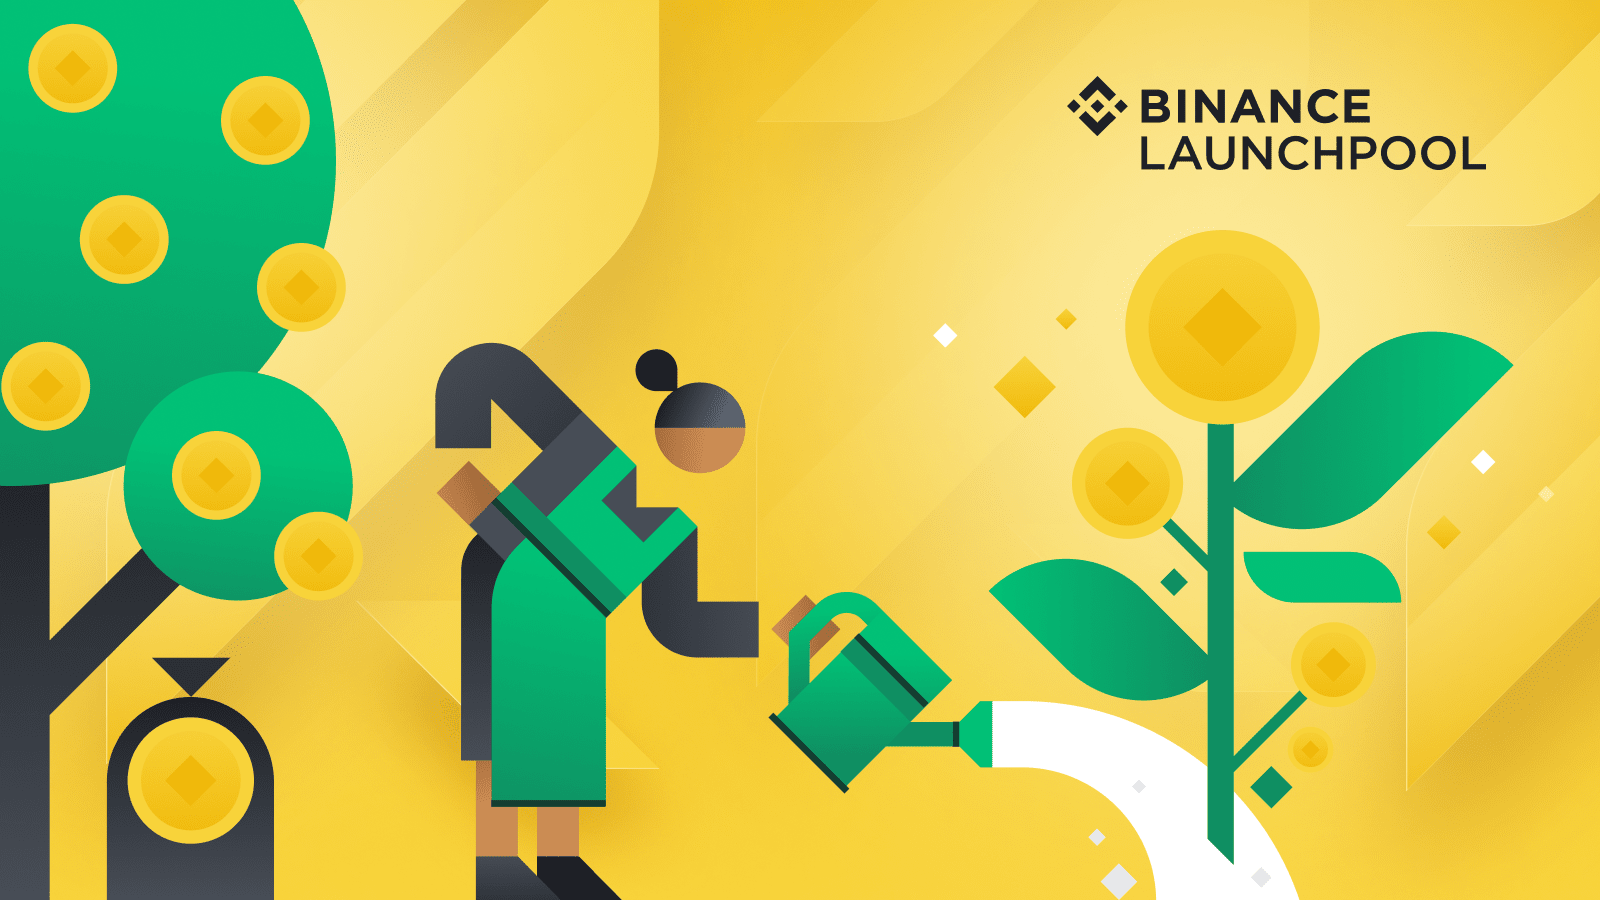 Binance Launchpool: Boosting Crypto Projects & Holders AlikeCryptocurrency Trading Signals, Strategies & Templates | DexStrats